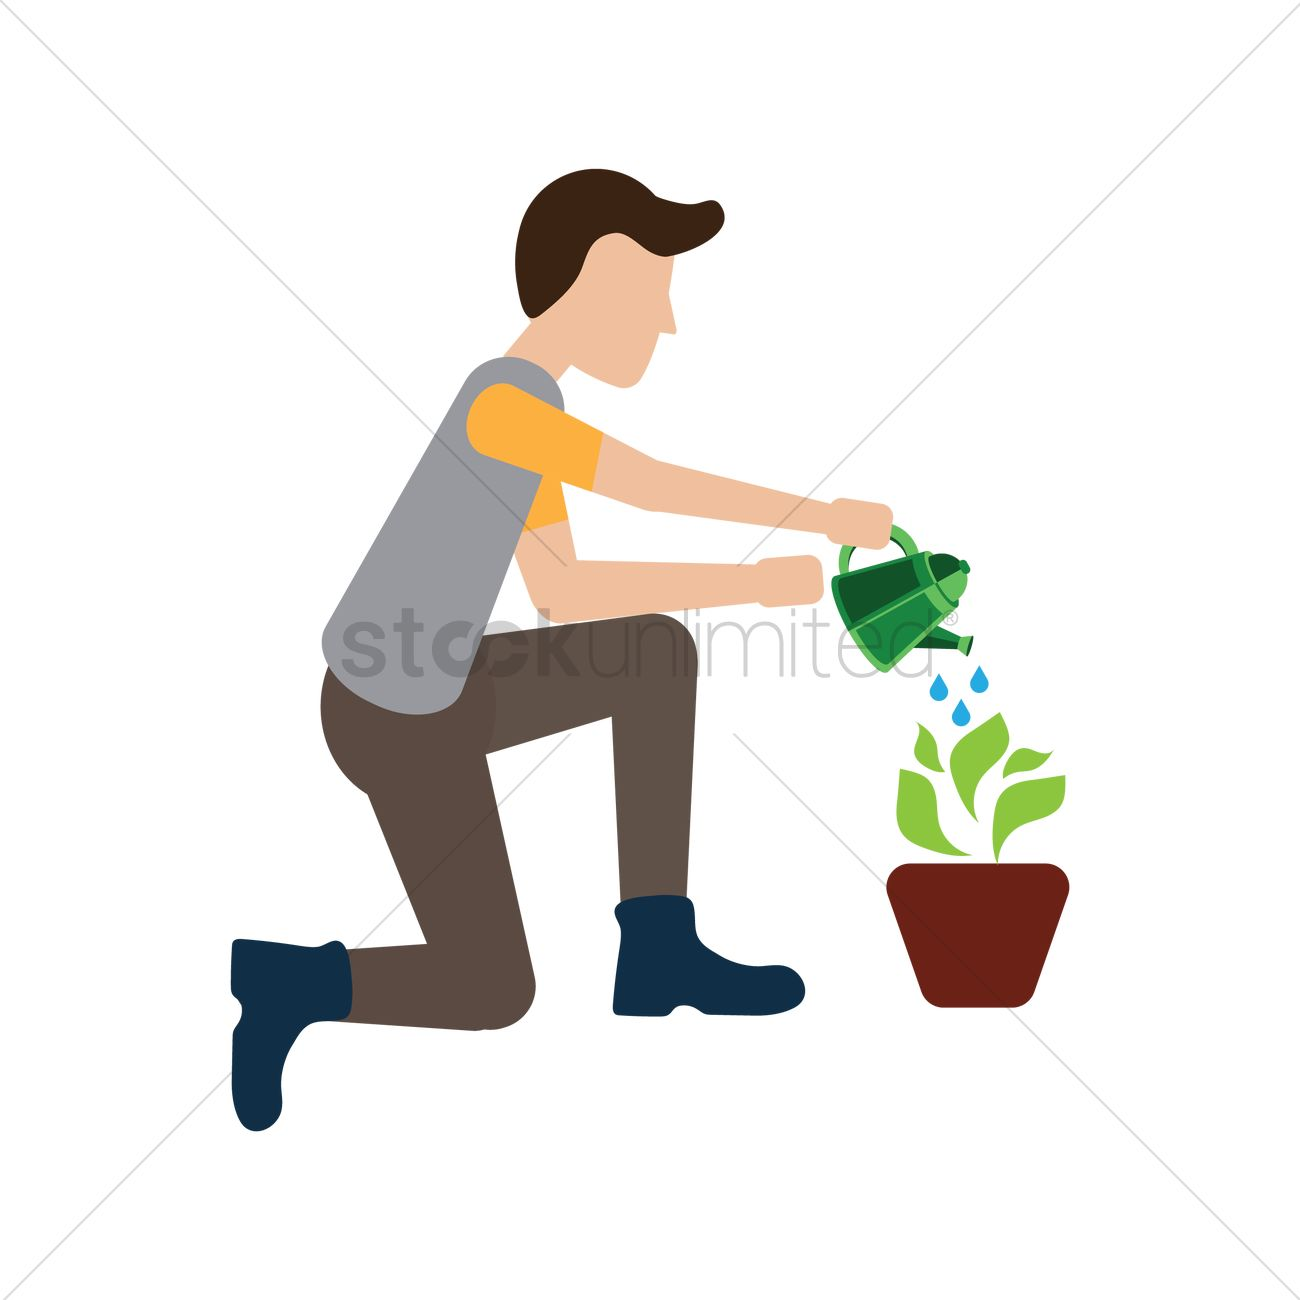 Man Watering Plant Vector Image 1548291 Stockunlimited